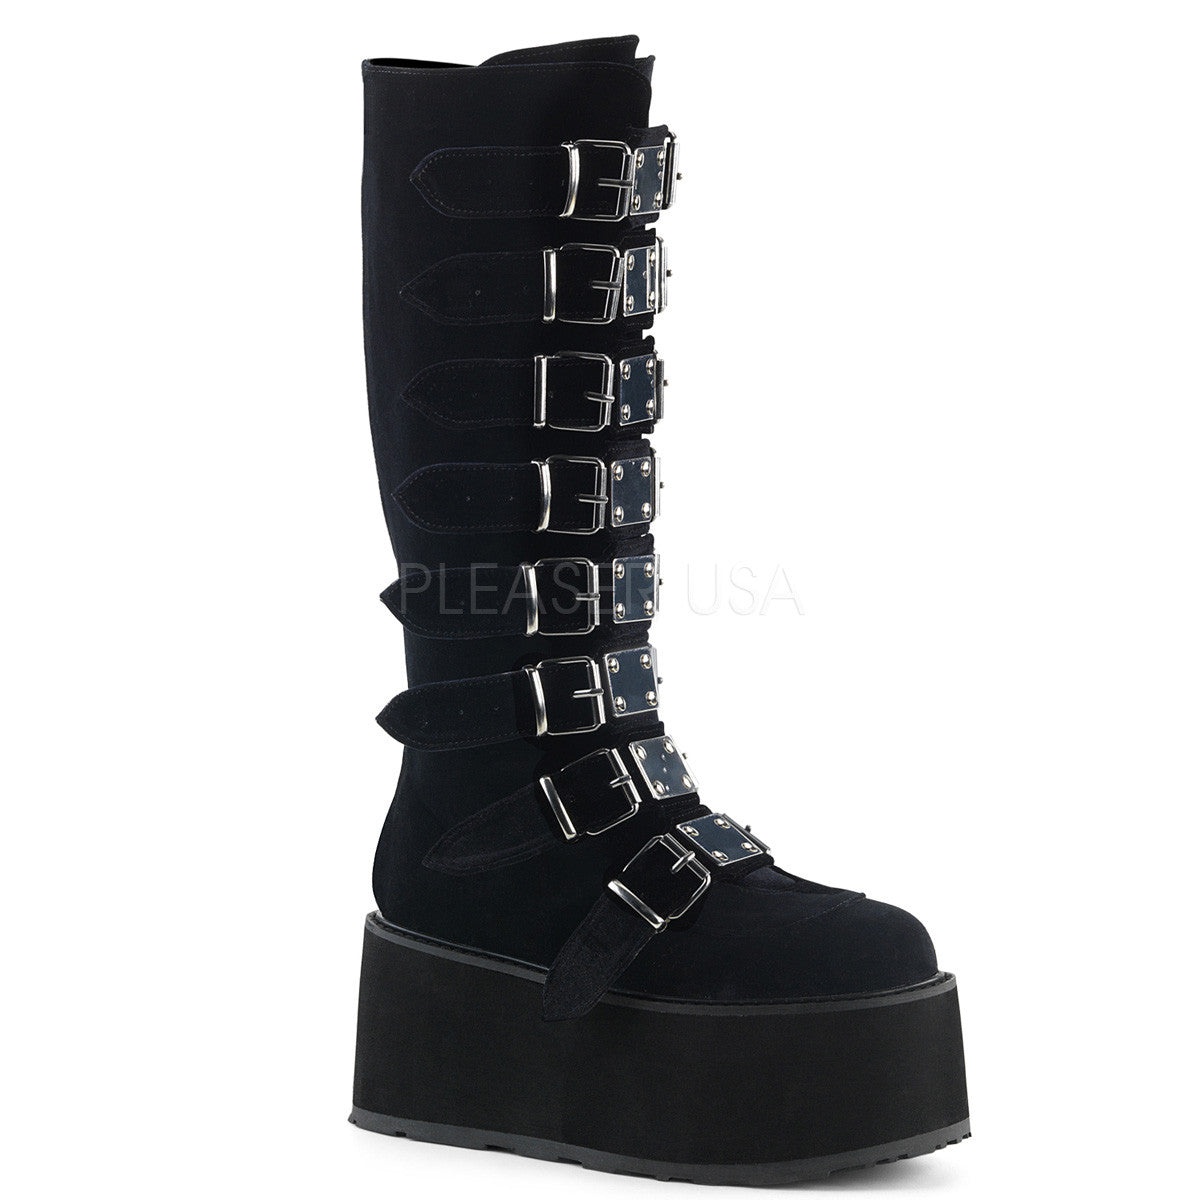 "3 1/2"" Platform Knee High Boot With 8 Buckle Straps, Back Metal Zip"